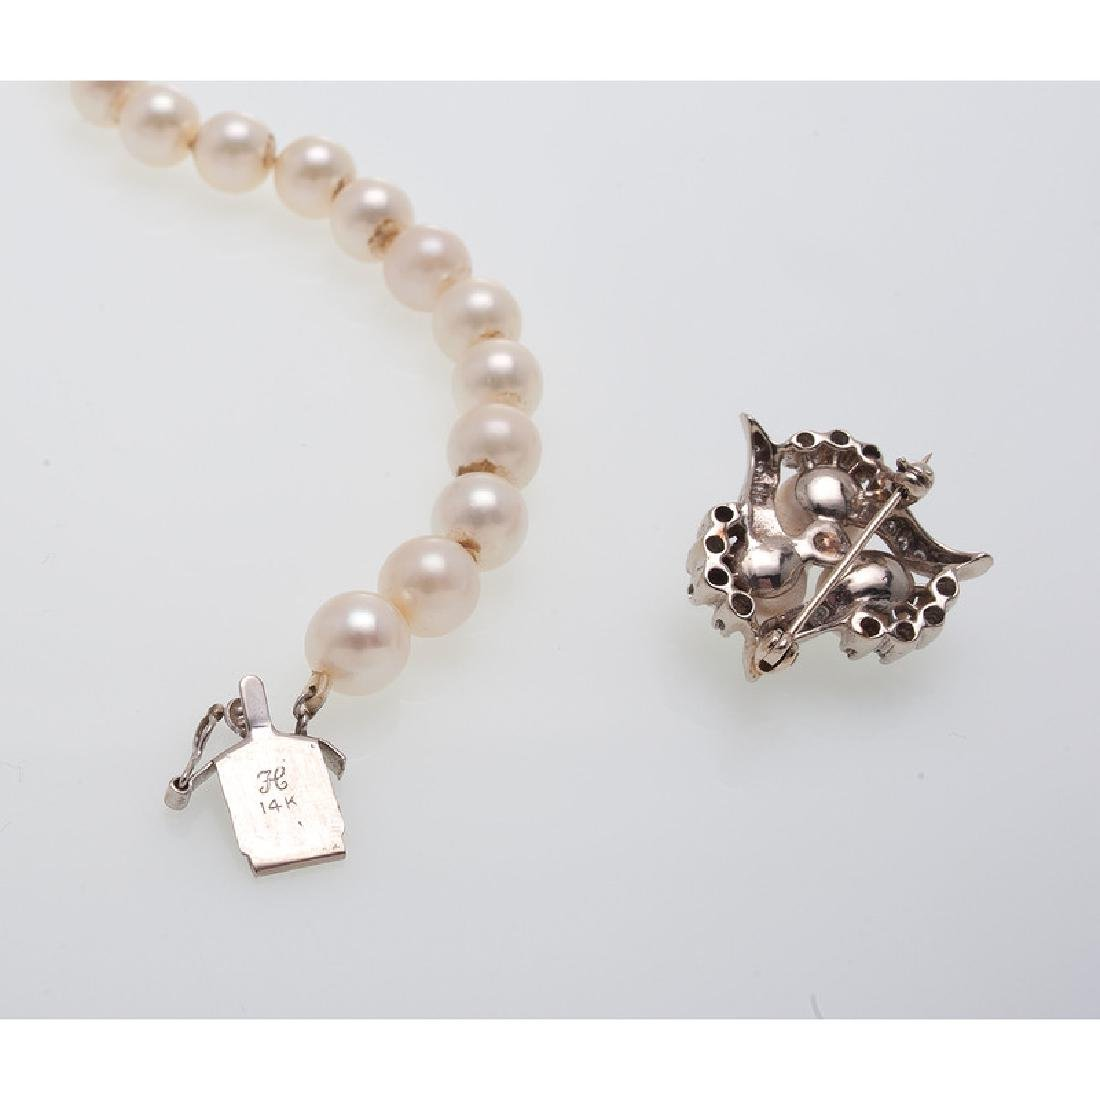 14 Karat White Gold Pearl Necklace and Brooch - 6